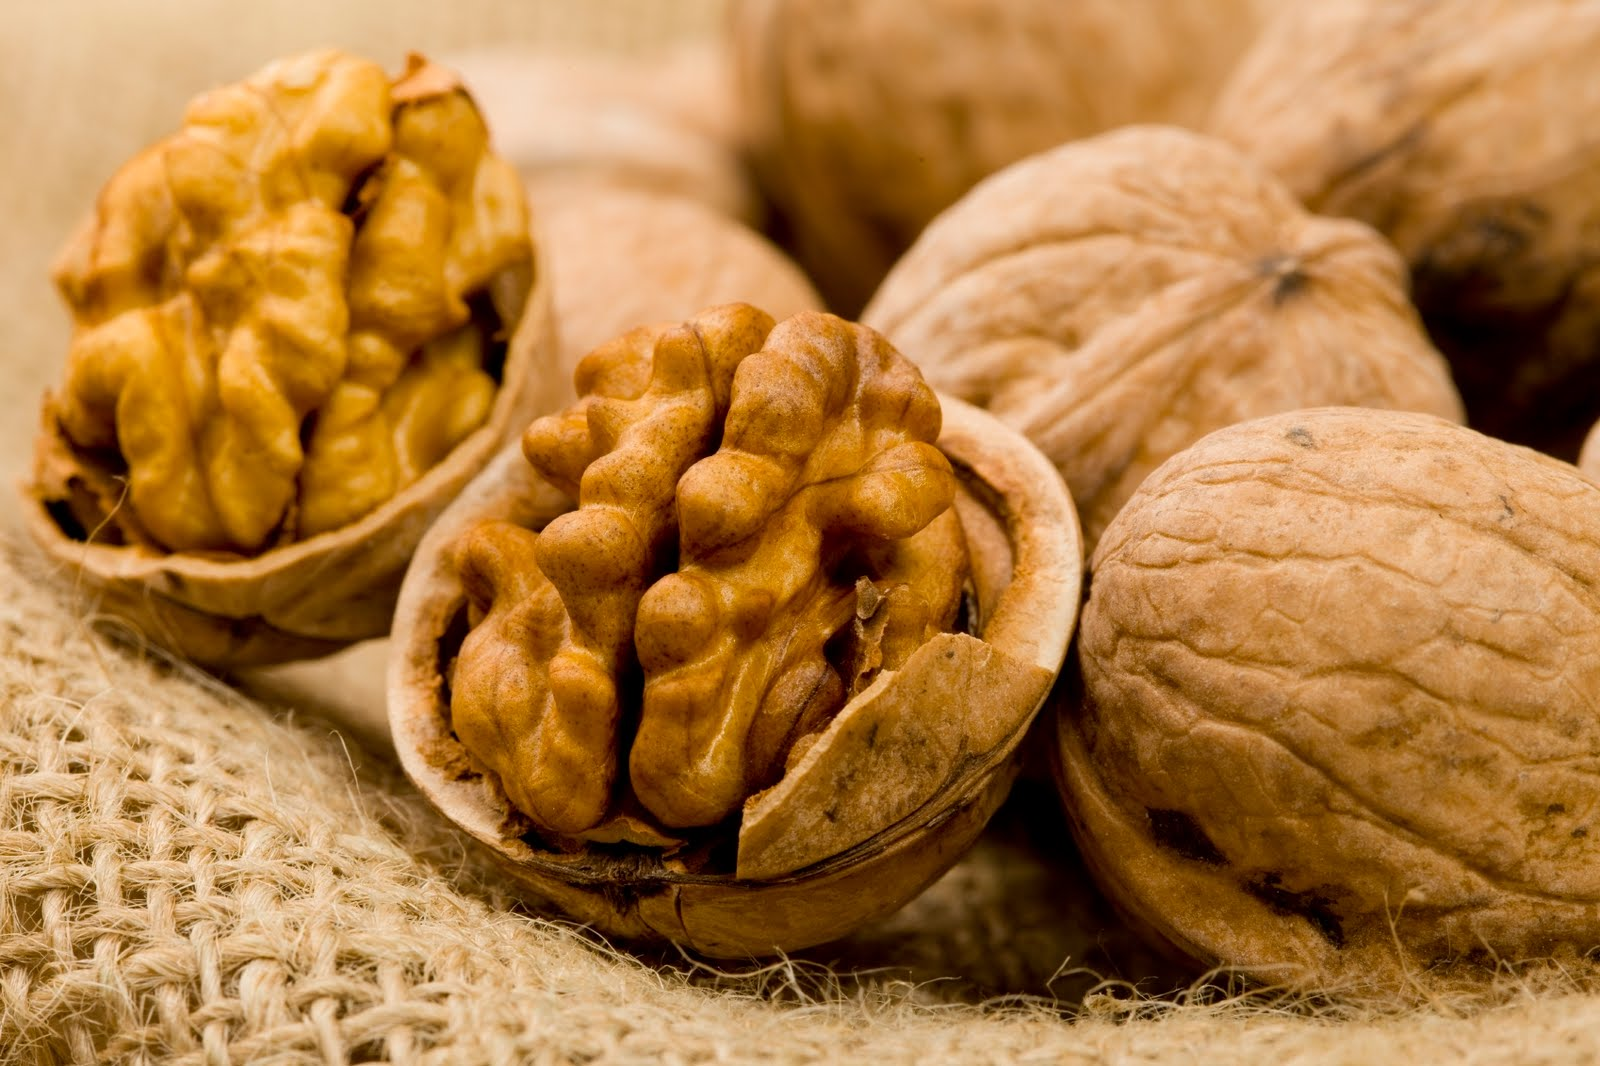 There Are At Least 10M Indian Families Whose Daily Food Intake Includes Some Nuts Its Good For Health And Then During Diwali Other Festivals